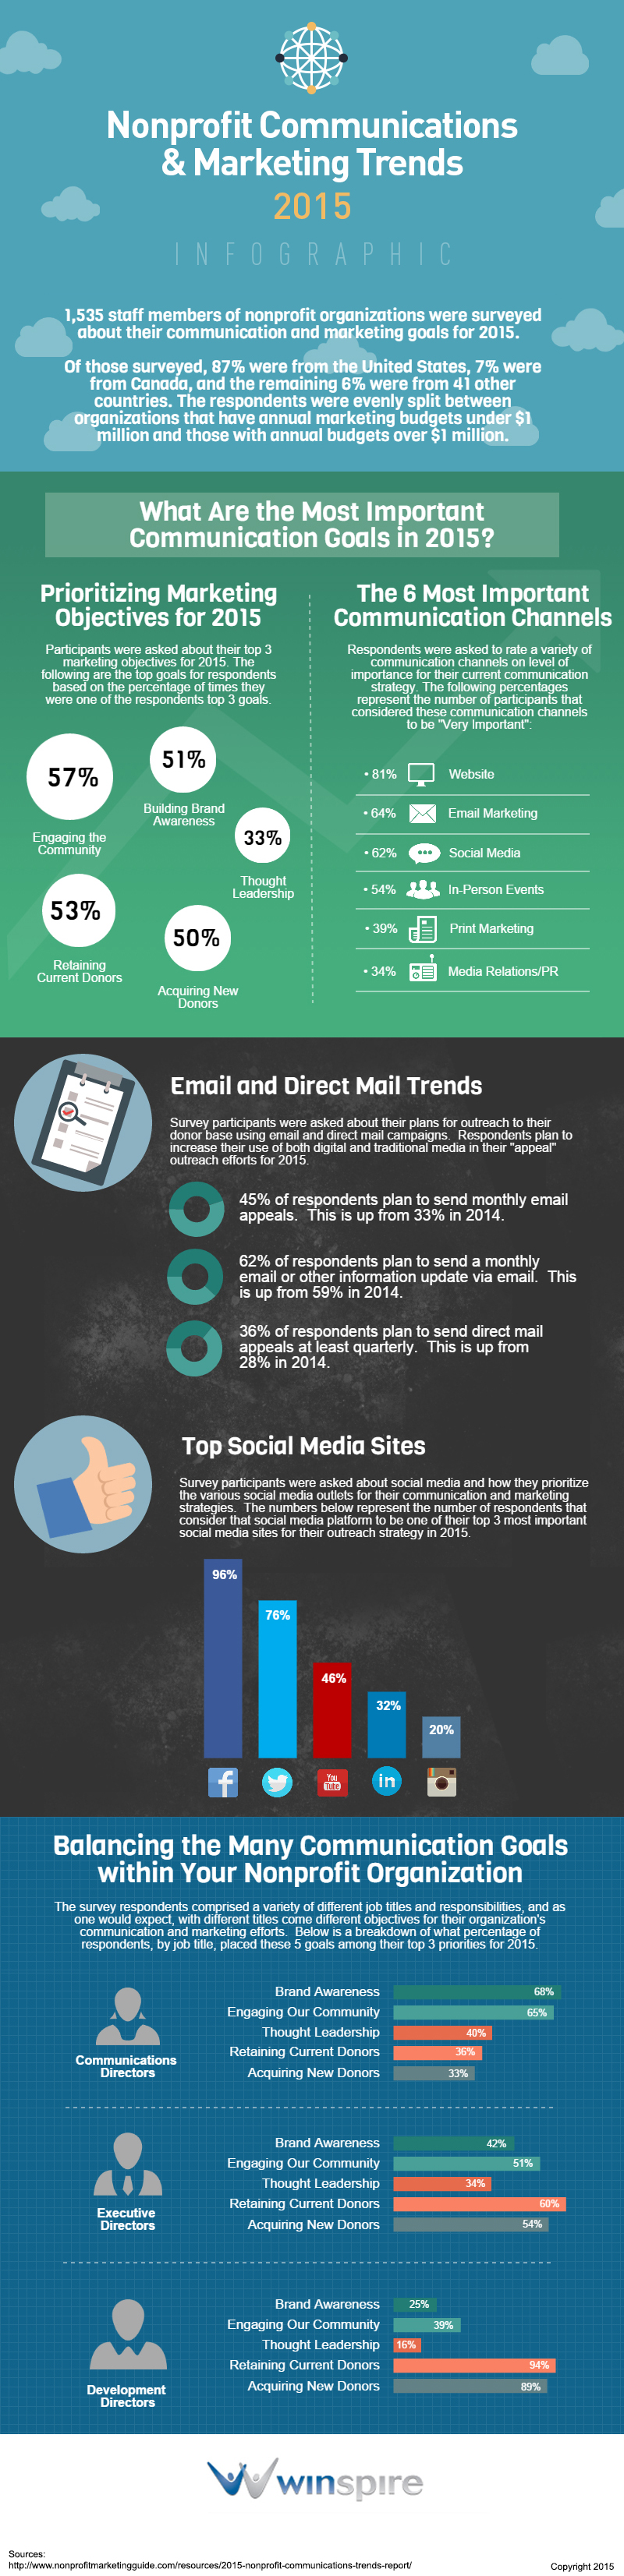 Winspire-Nonprofit-Communications-Trends-Infographic